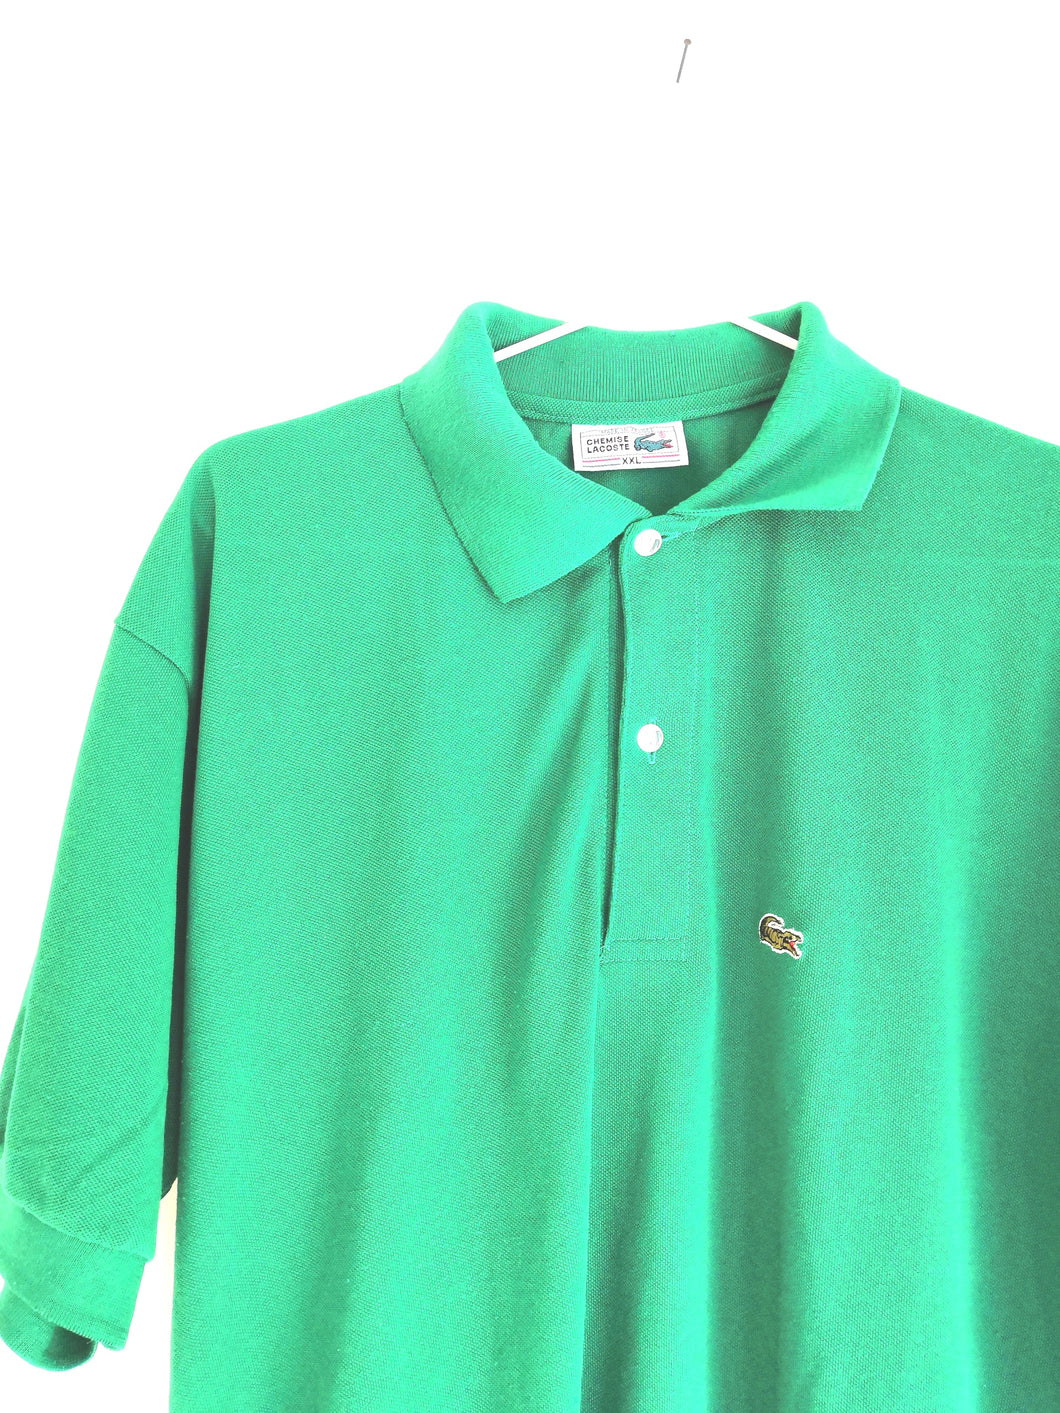 GREEN LACOSTE T-SHIRT